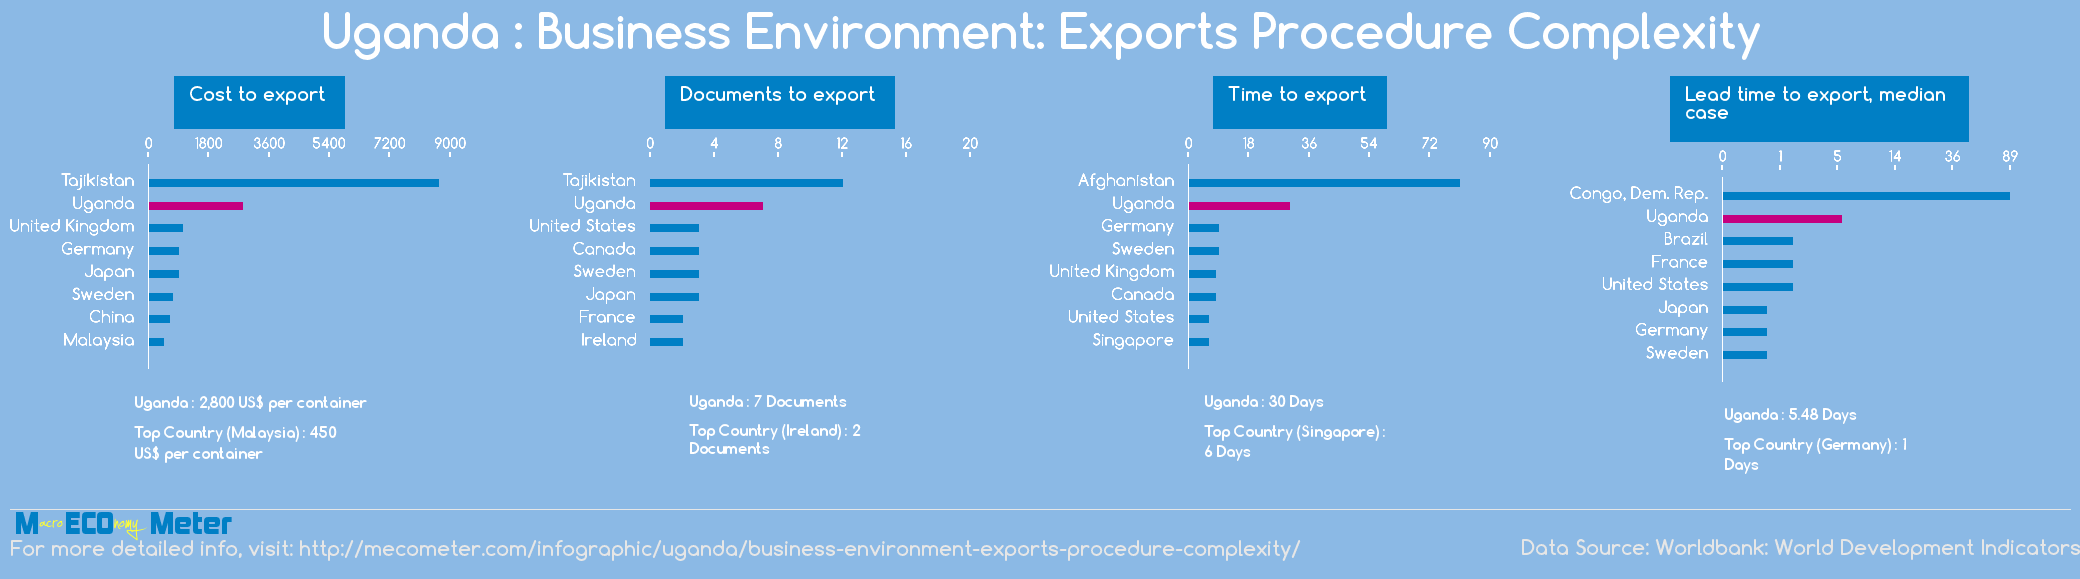 Uganda : Business Environment: Exports Procedure Complexity